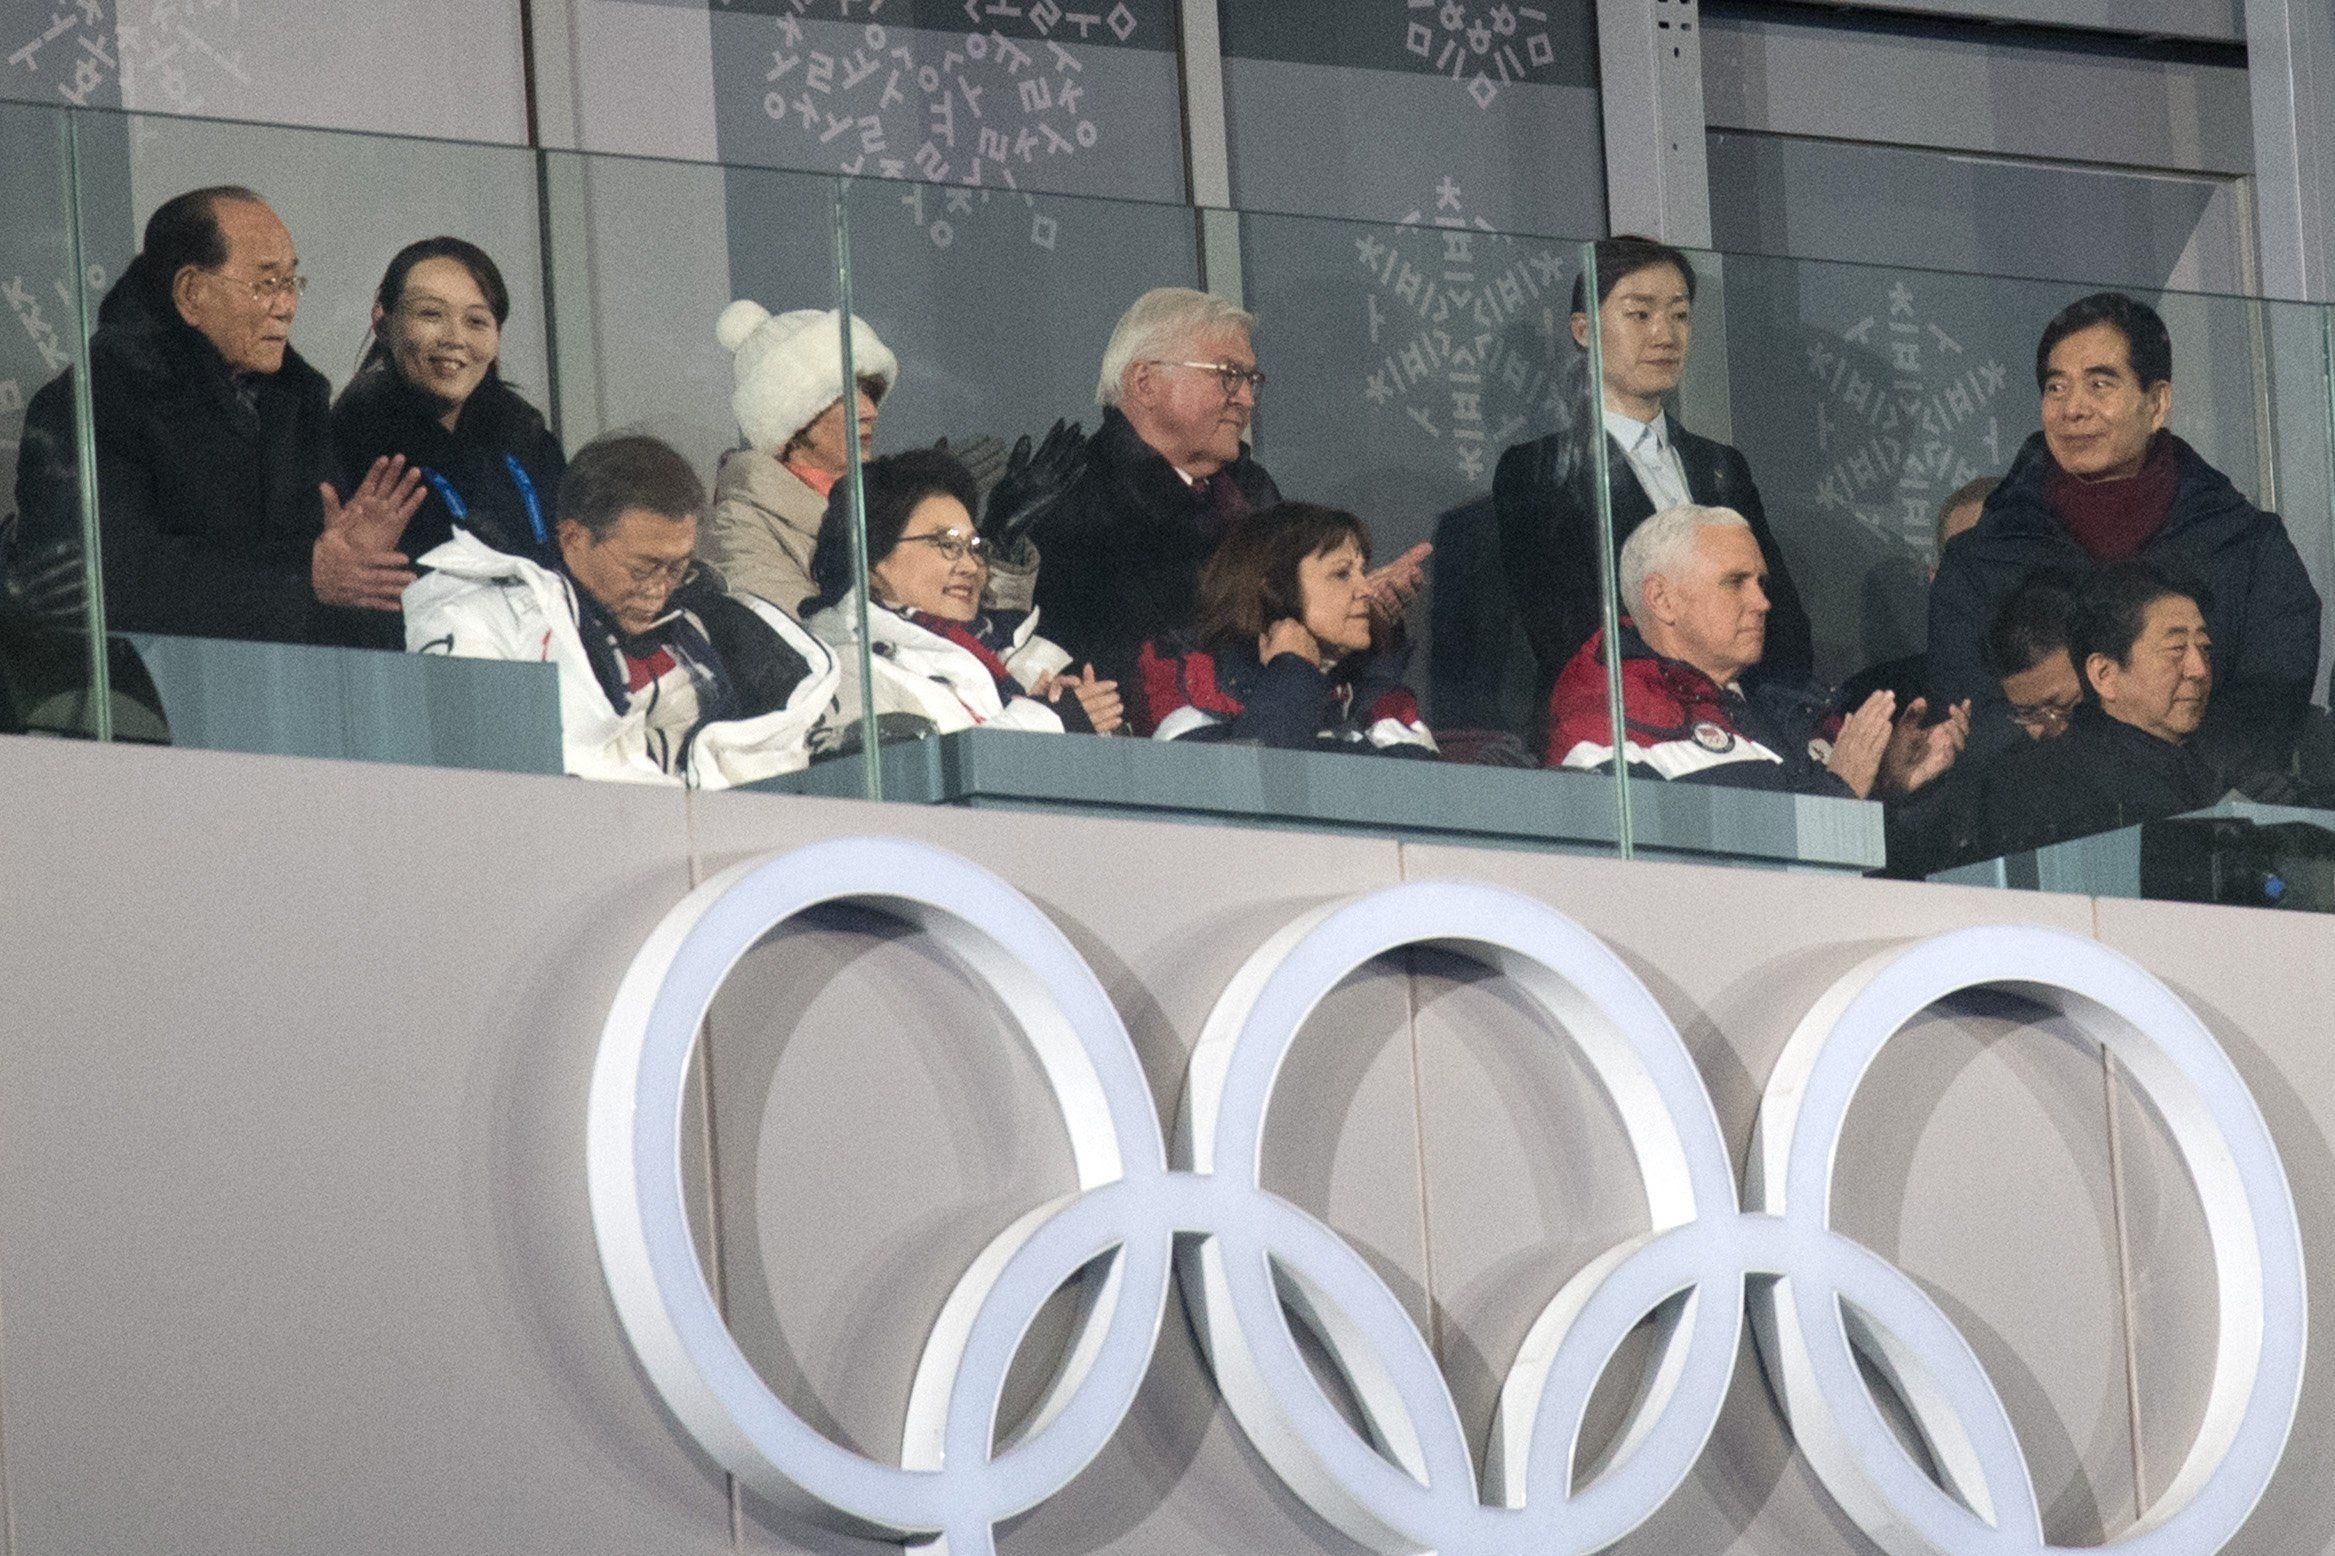 Politics at play at Winter Olympics